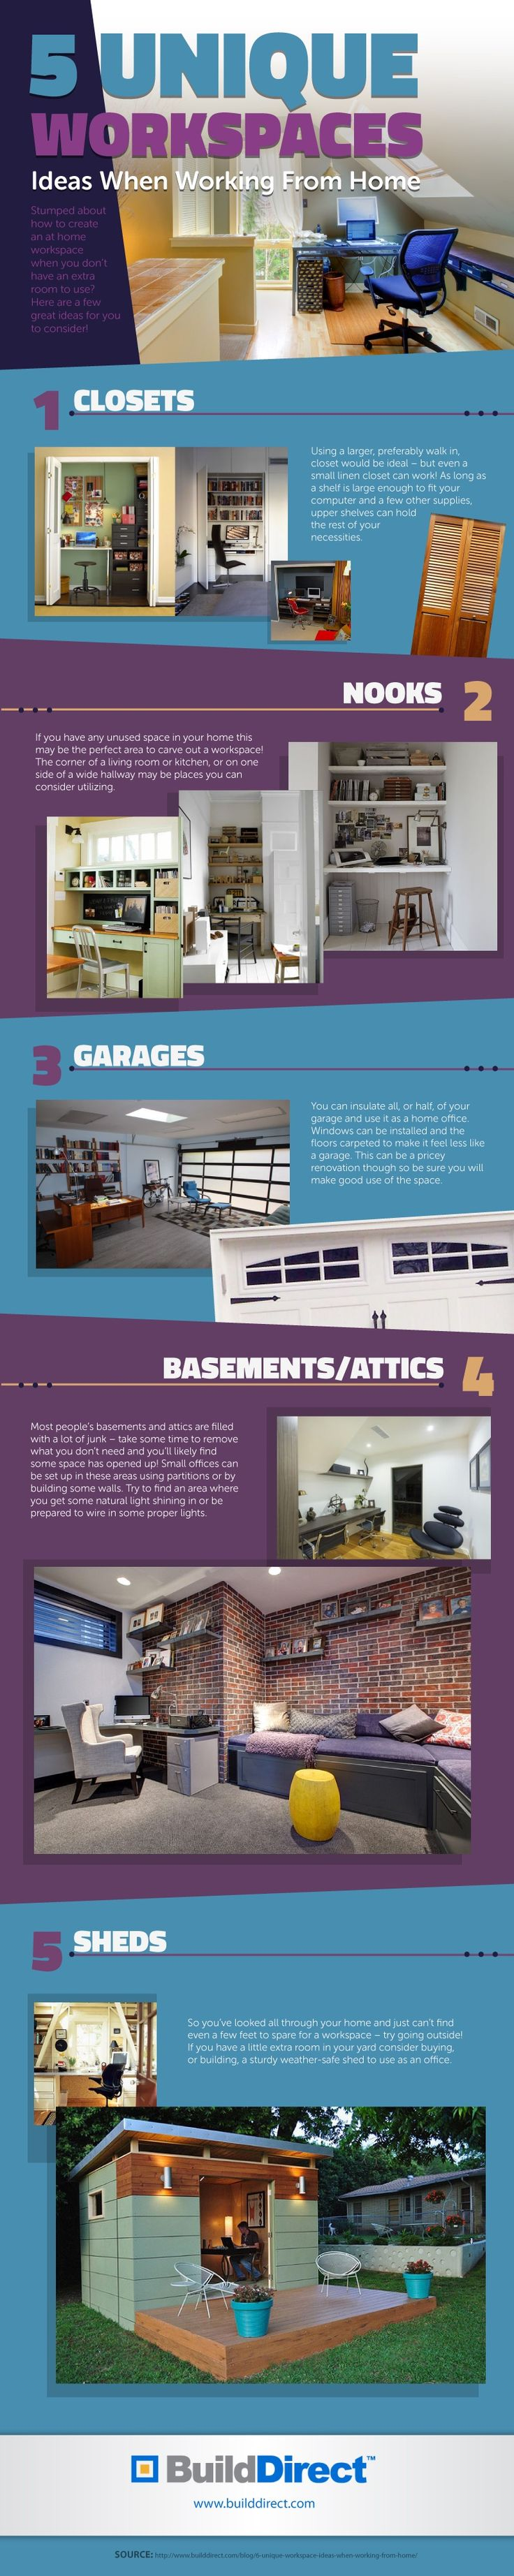 Workspaces at home are more common as 21st century citizens redefine work/life balance. Here is an infographic that outlines 5 unique home offices.Read more: http://www.builddirect.com/blog/5-unique-workspaces-an-infographic/